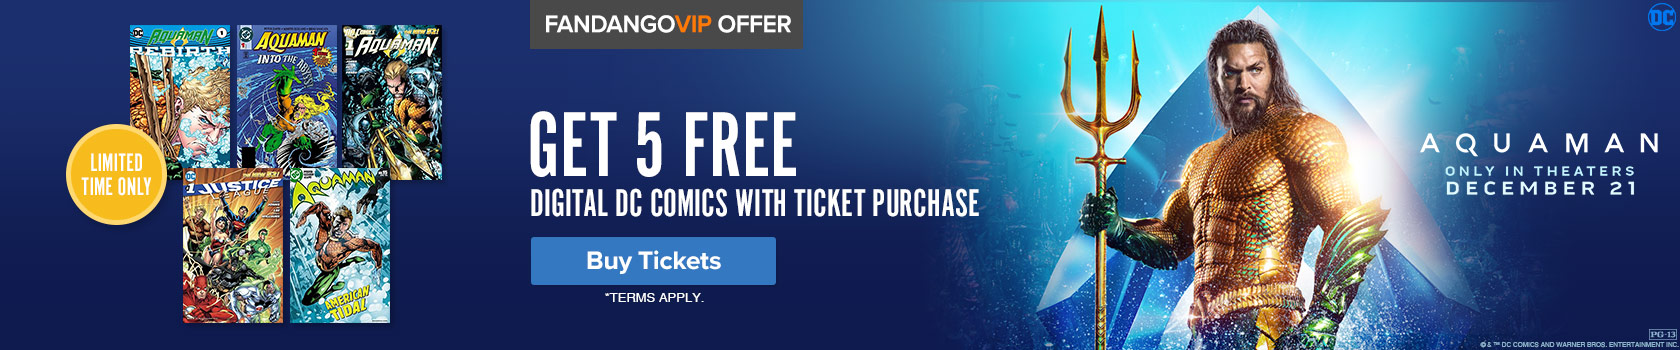 1680 x 350 Fandango - Aquaman GWP: Get 5 free digital DC comics with ticket purchase